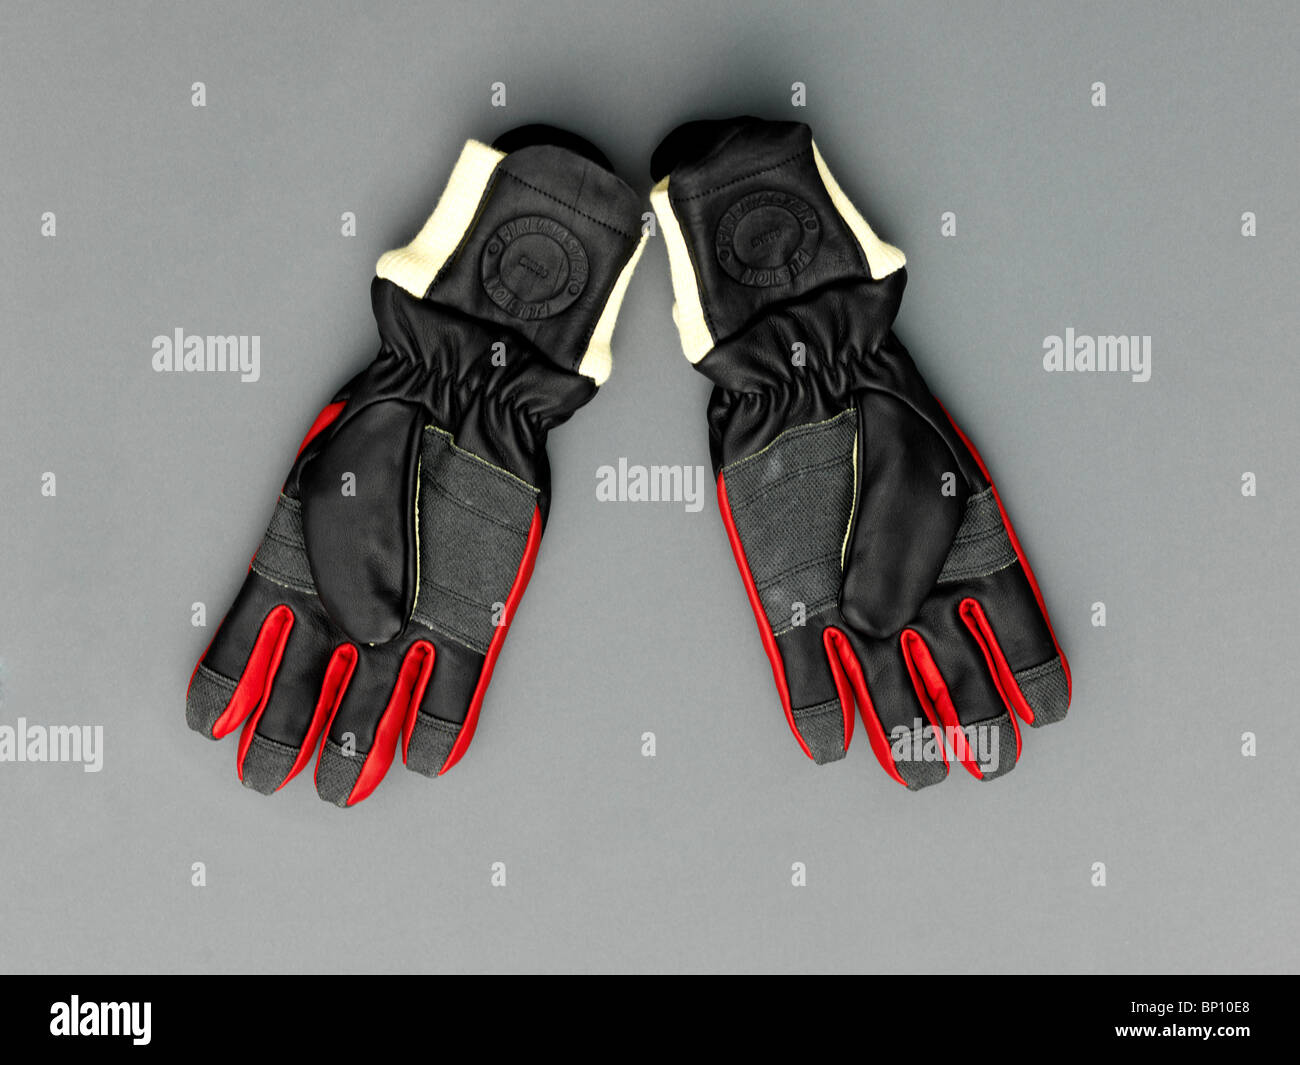 Fireman Gloves Stock Photos & Fireman Gloves Stock Images